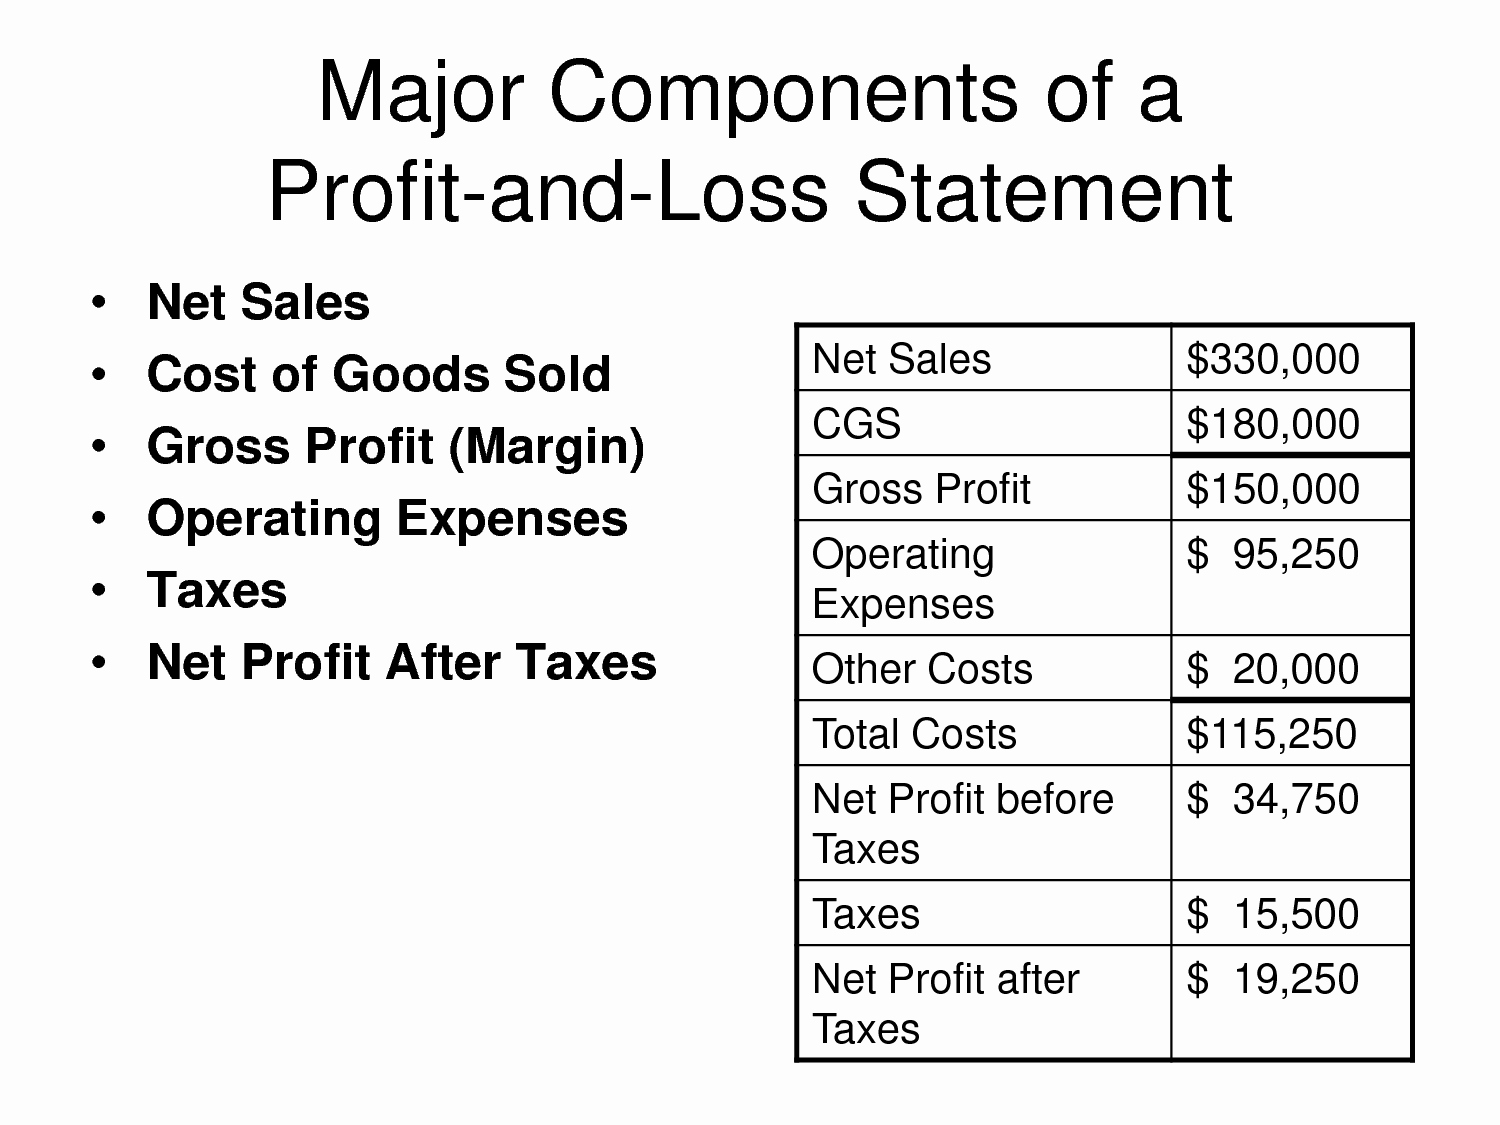 Basic Profit and Loss Statement Beautiful Basic Profit and Loss Statement Template Mughals